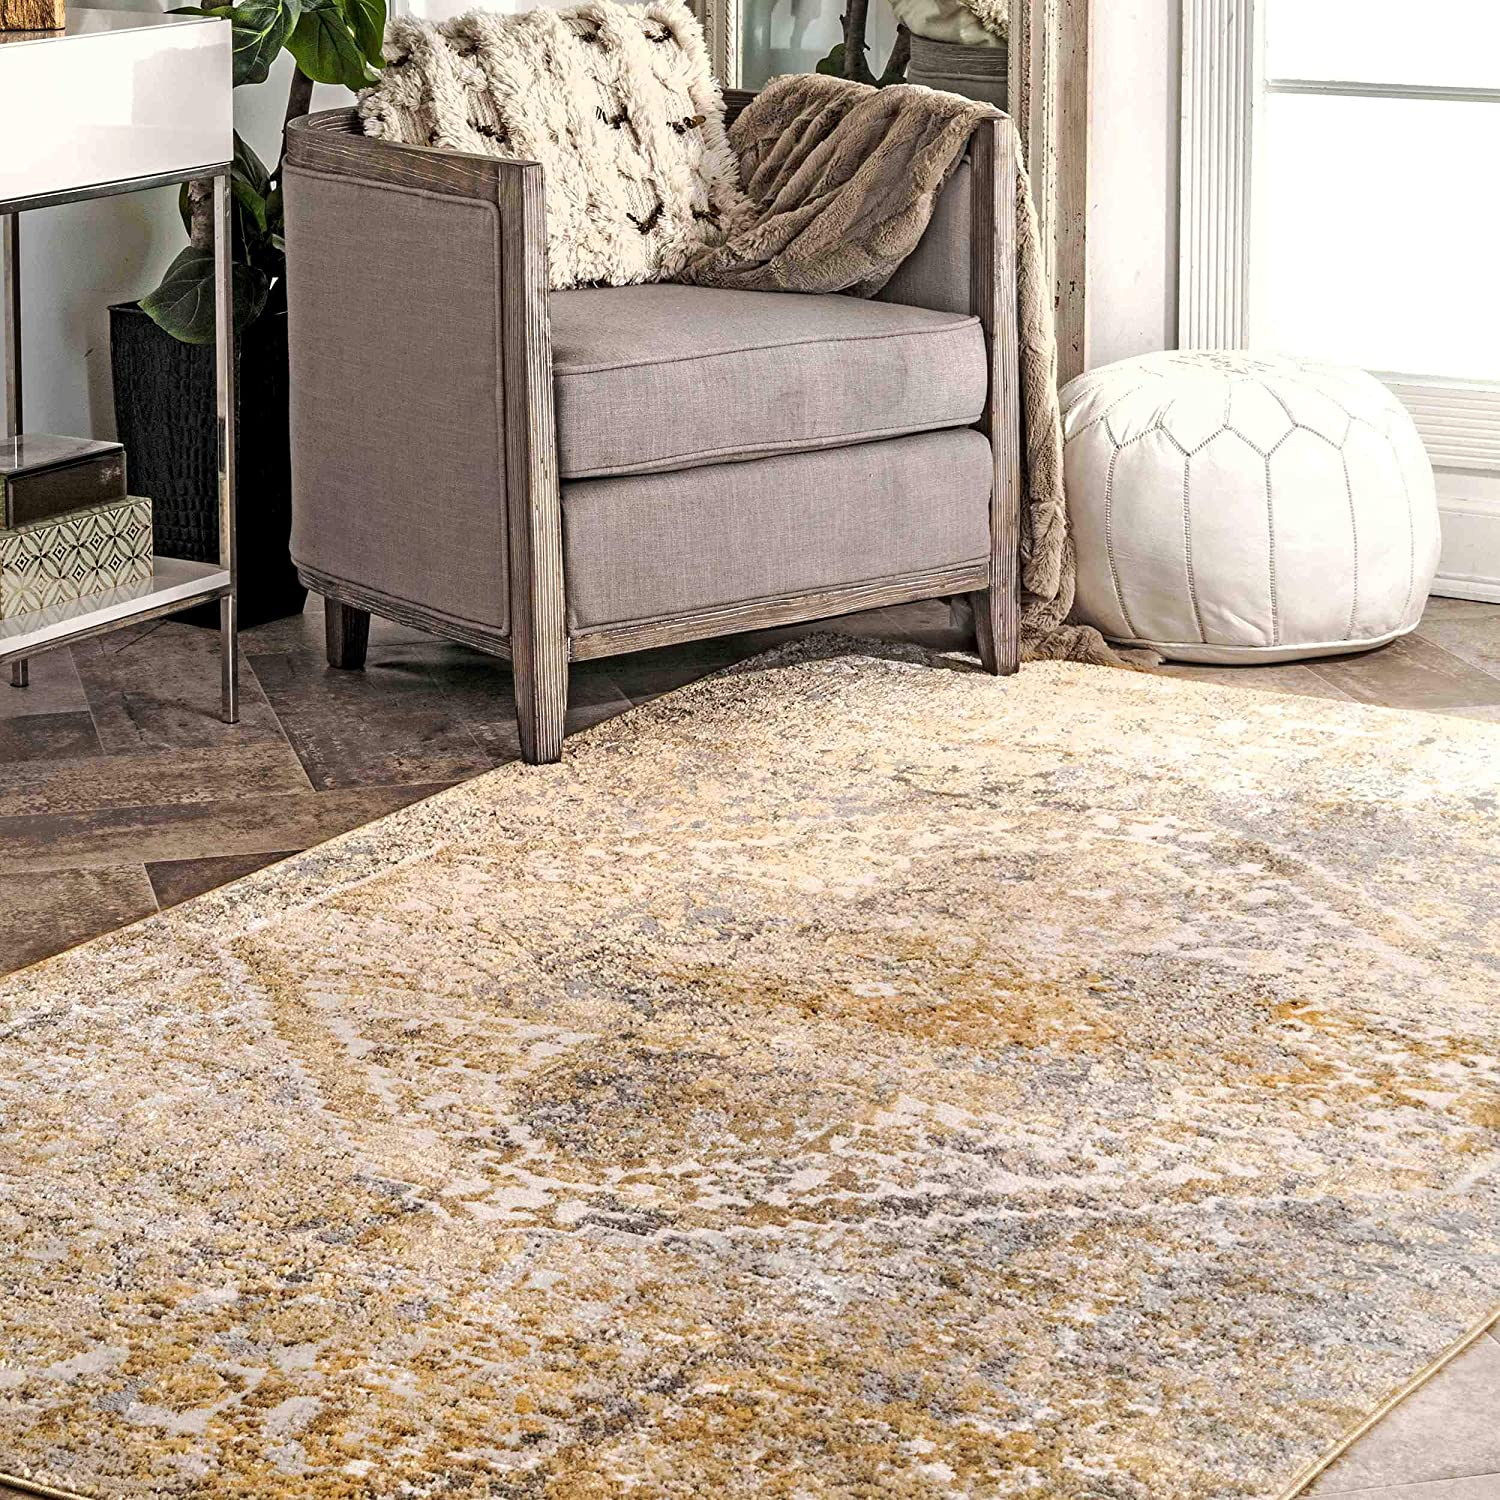 nuLOOM Patty Vintage Medallion Special price Area Gold 5' x 8' Super sale period limited Rug